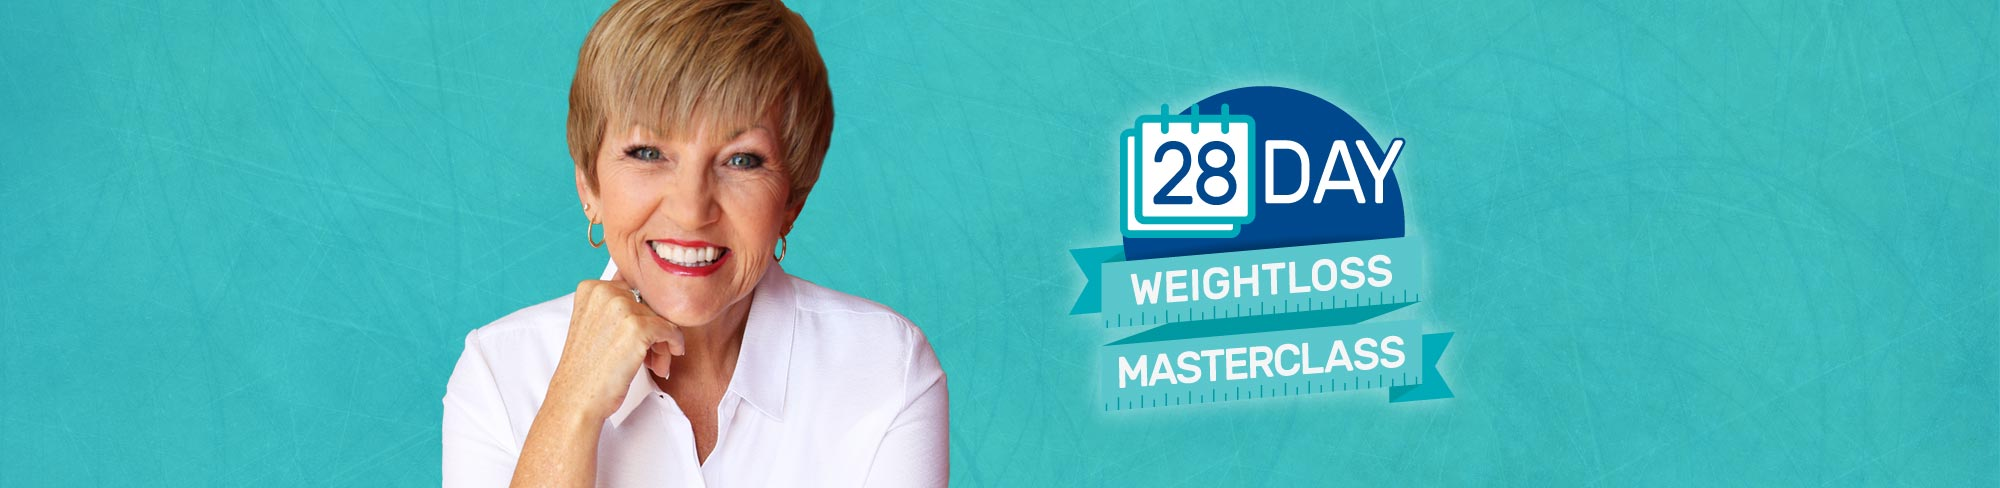 28 Day Weightloss Masterclass